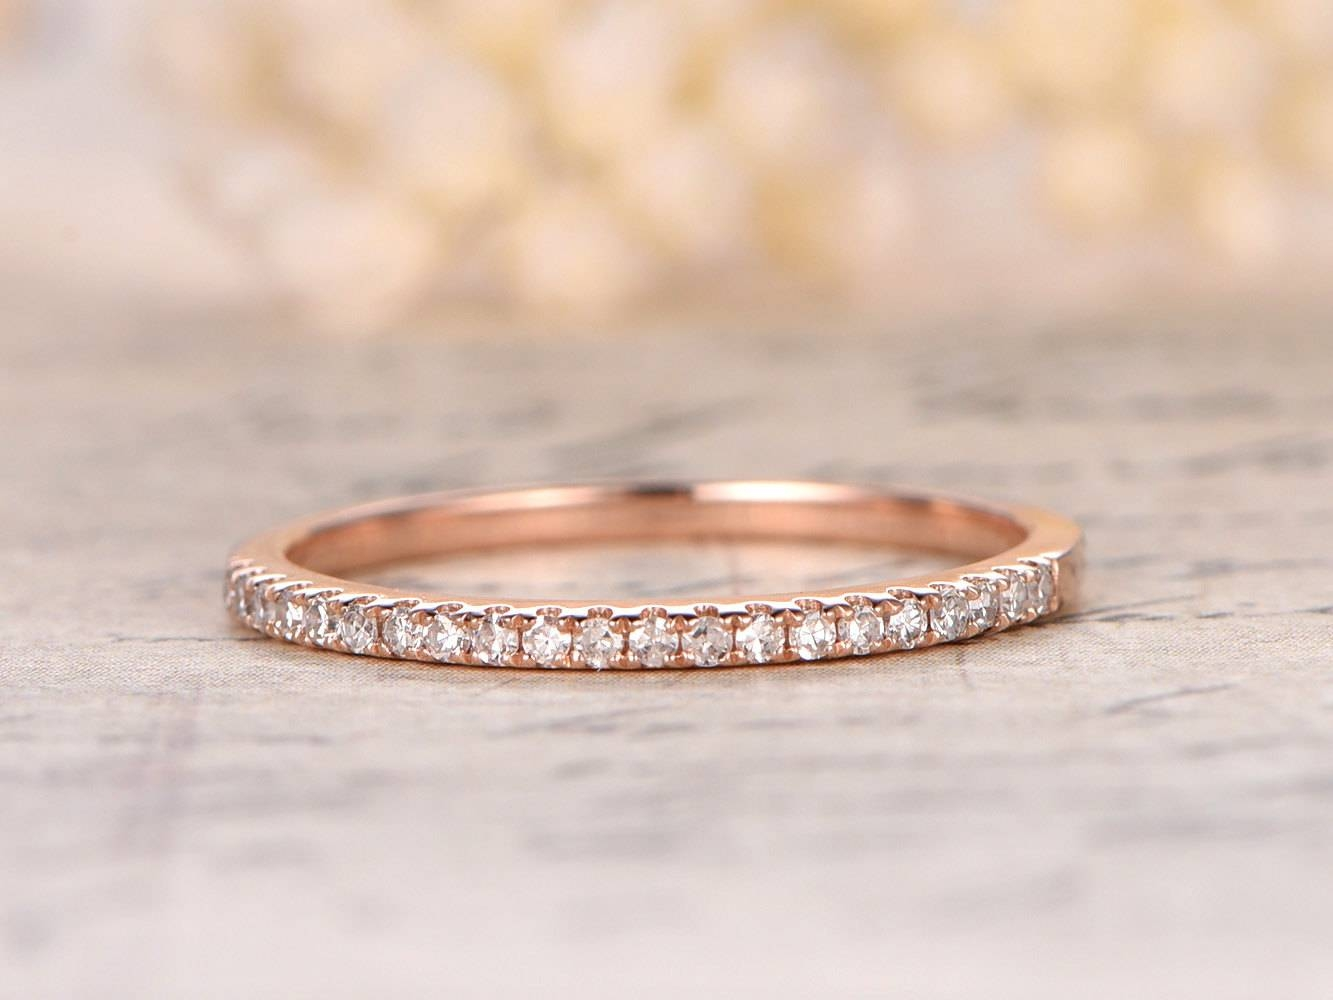 Valentine's Day Present 14K Rose Gold Wedding Band Half In Micro Pave Wedding Bands (Gallery 14 of 15)